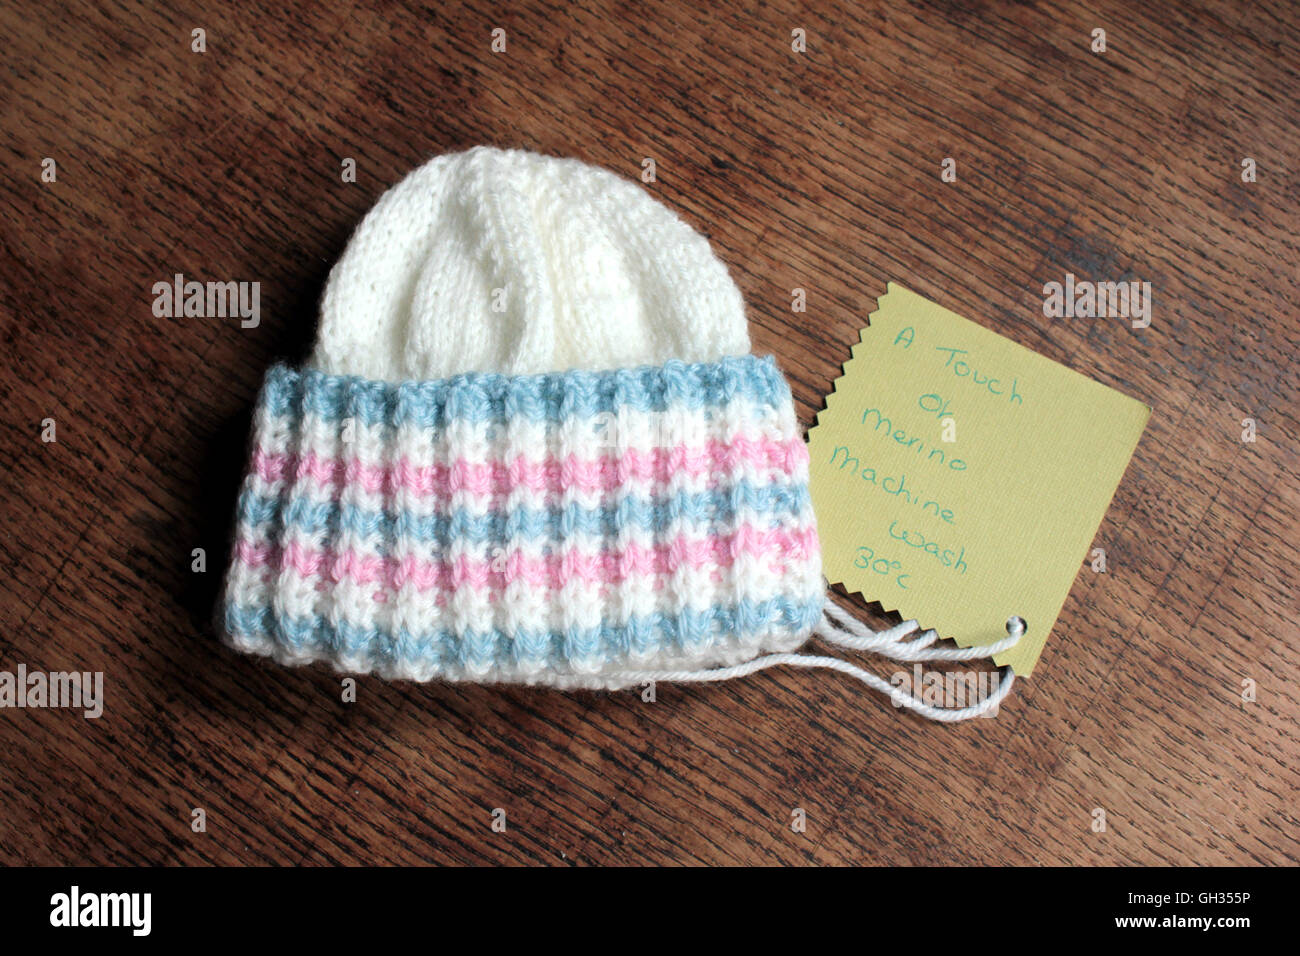 ee87abc7f90 A baby s hat hand knitted from a yarn with a touch of merino wool in the